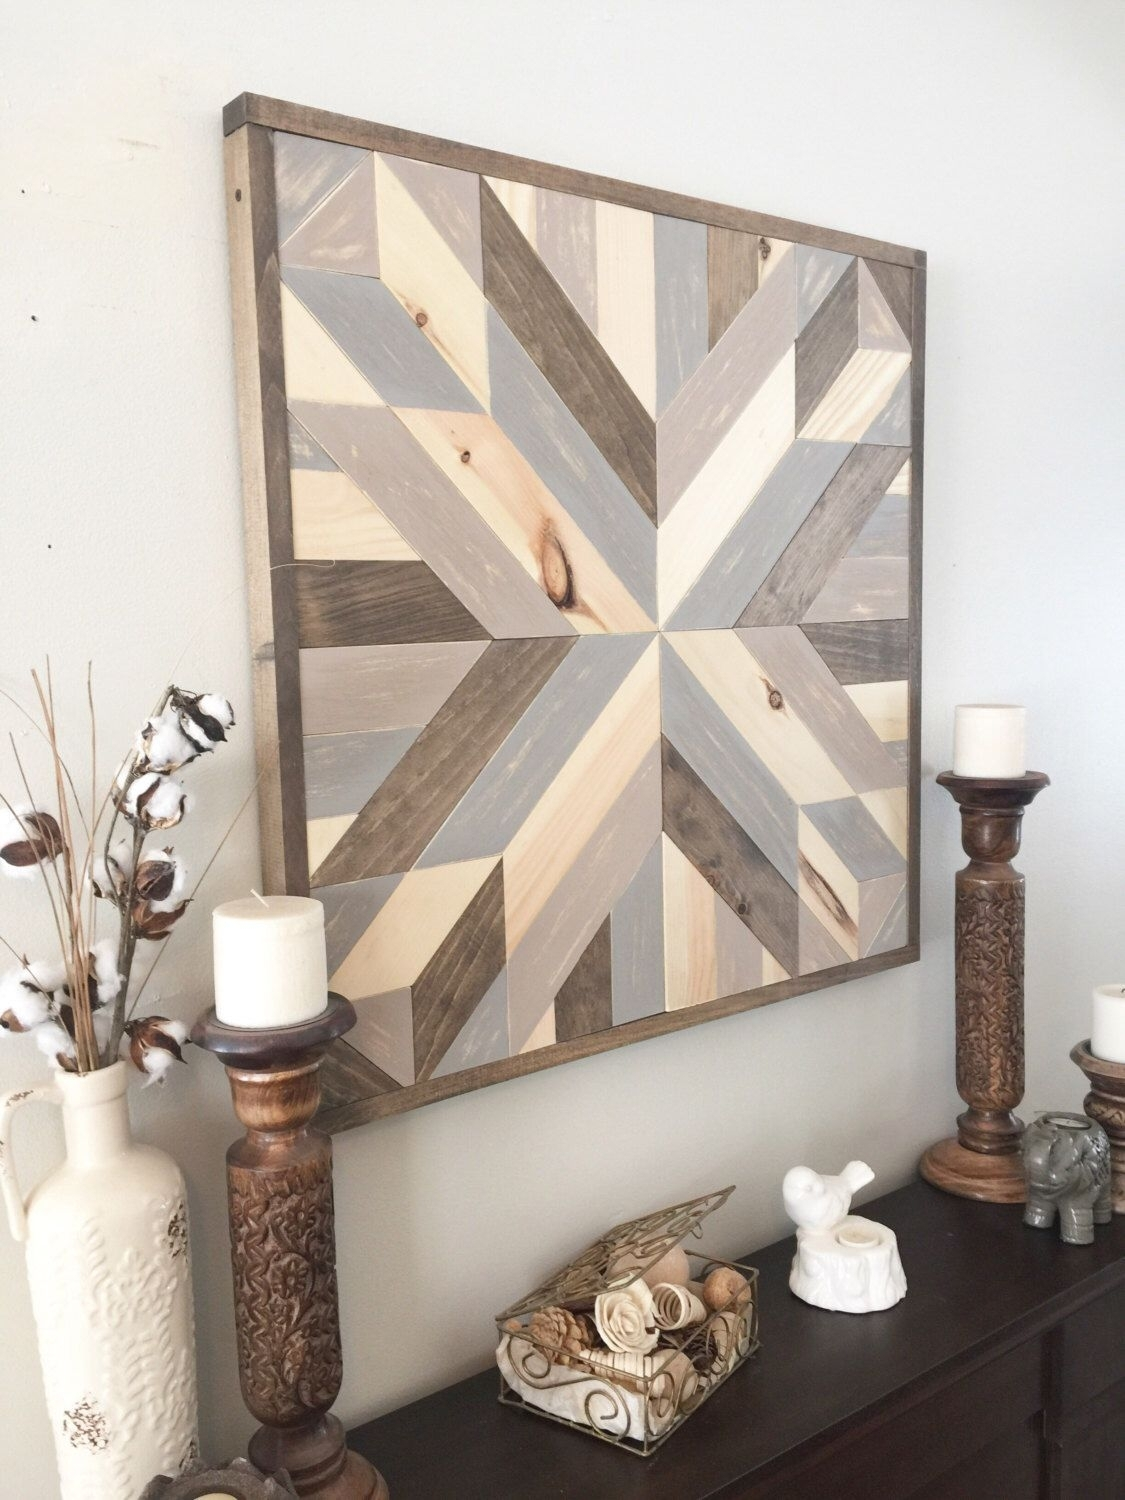 Wood Wall Art, Geometric Art, Boho Decor, Aztec Decor, Farmhouse Within Current Rustic Wall Art (Gallery 13 of 15)